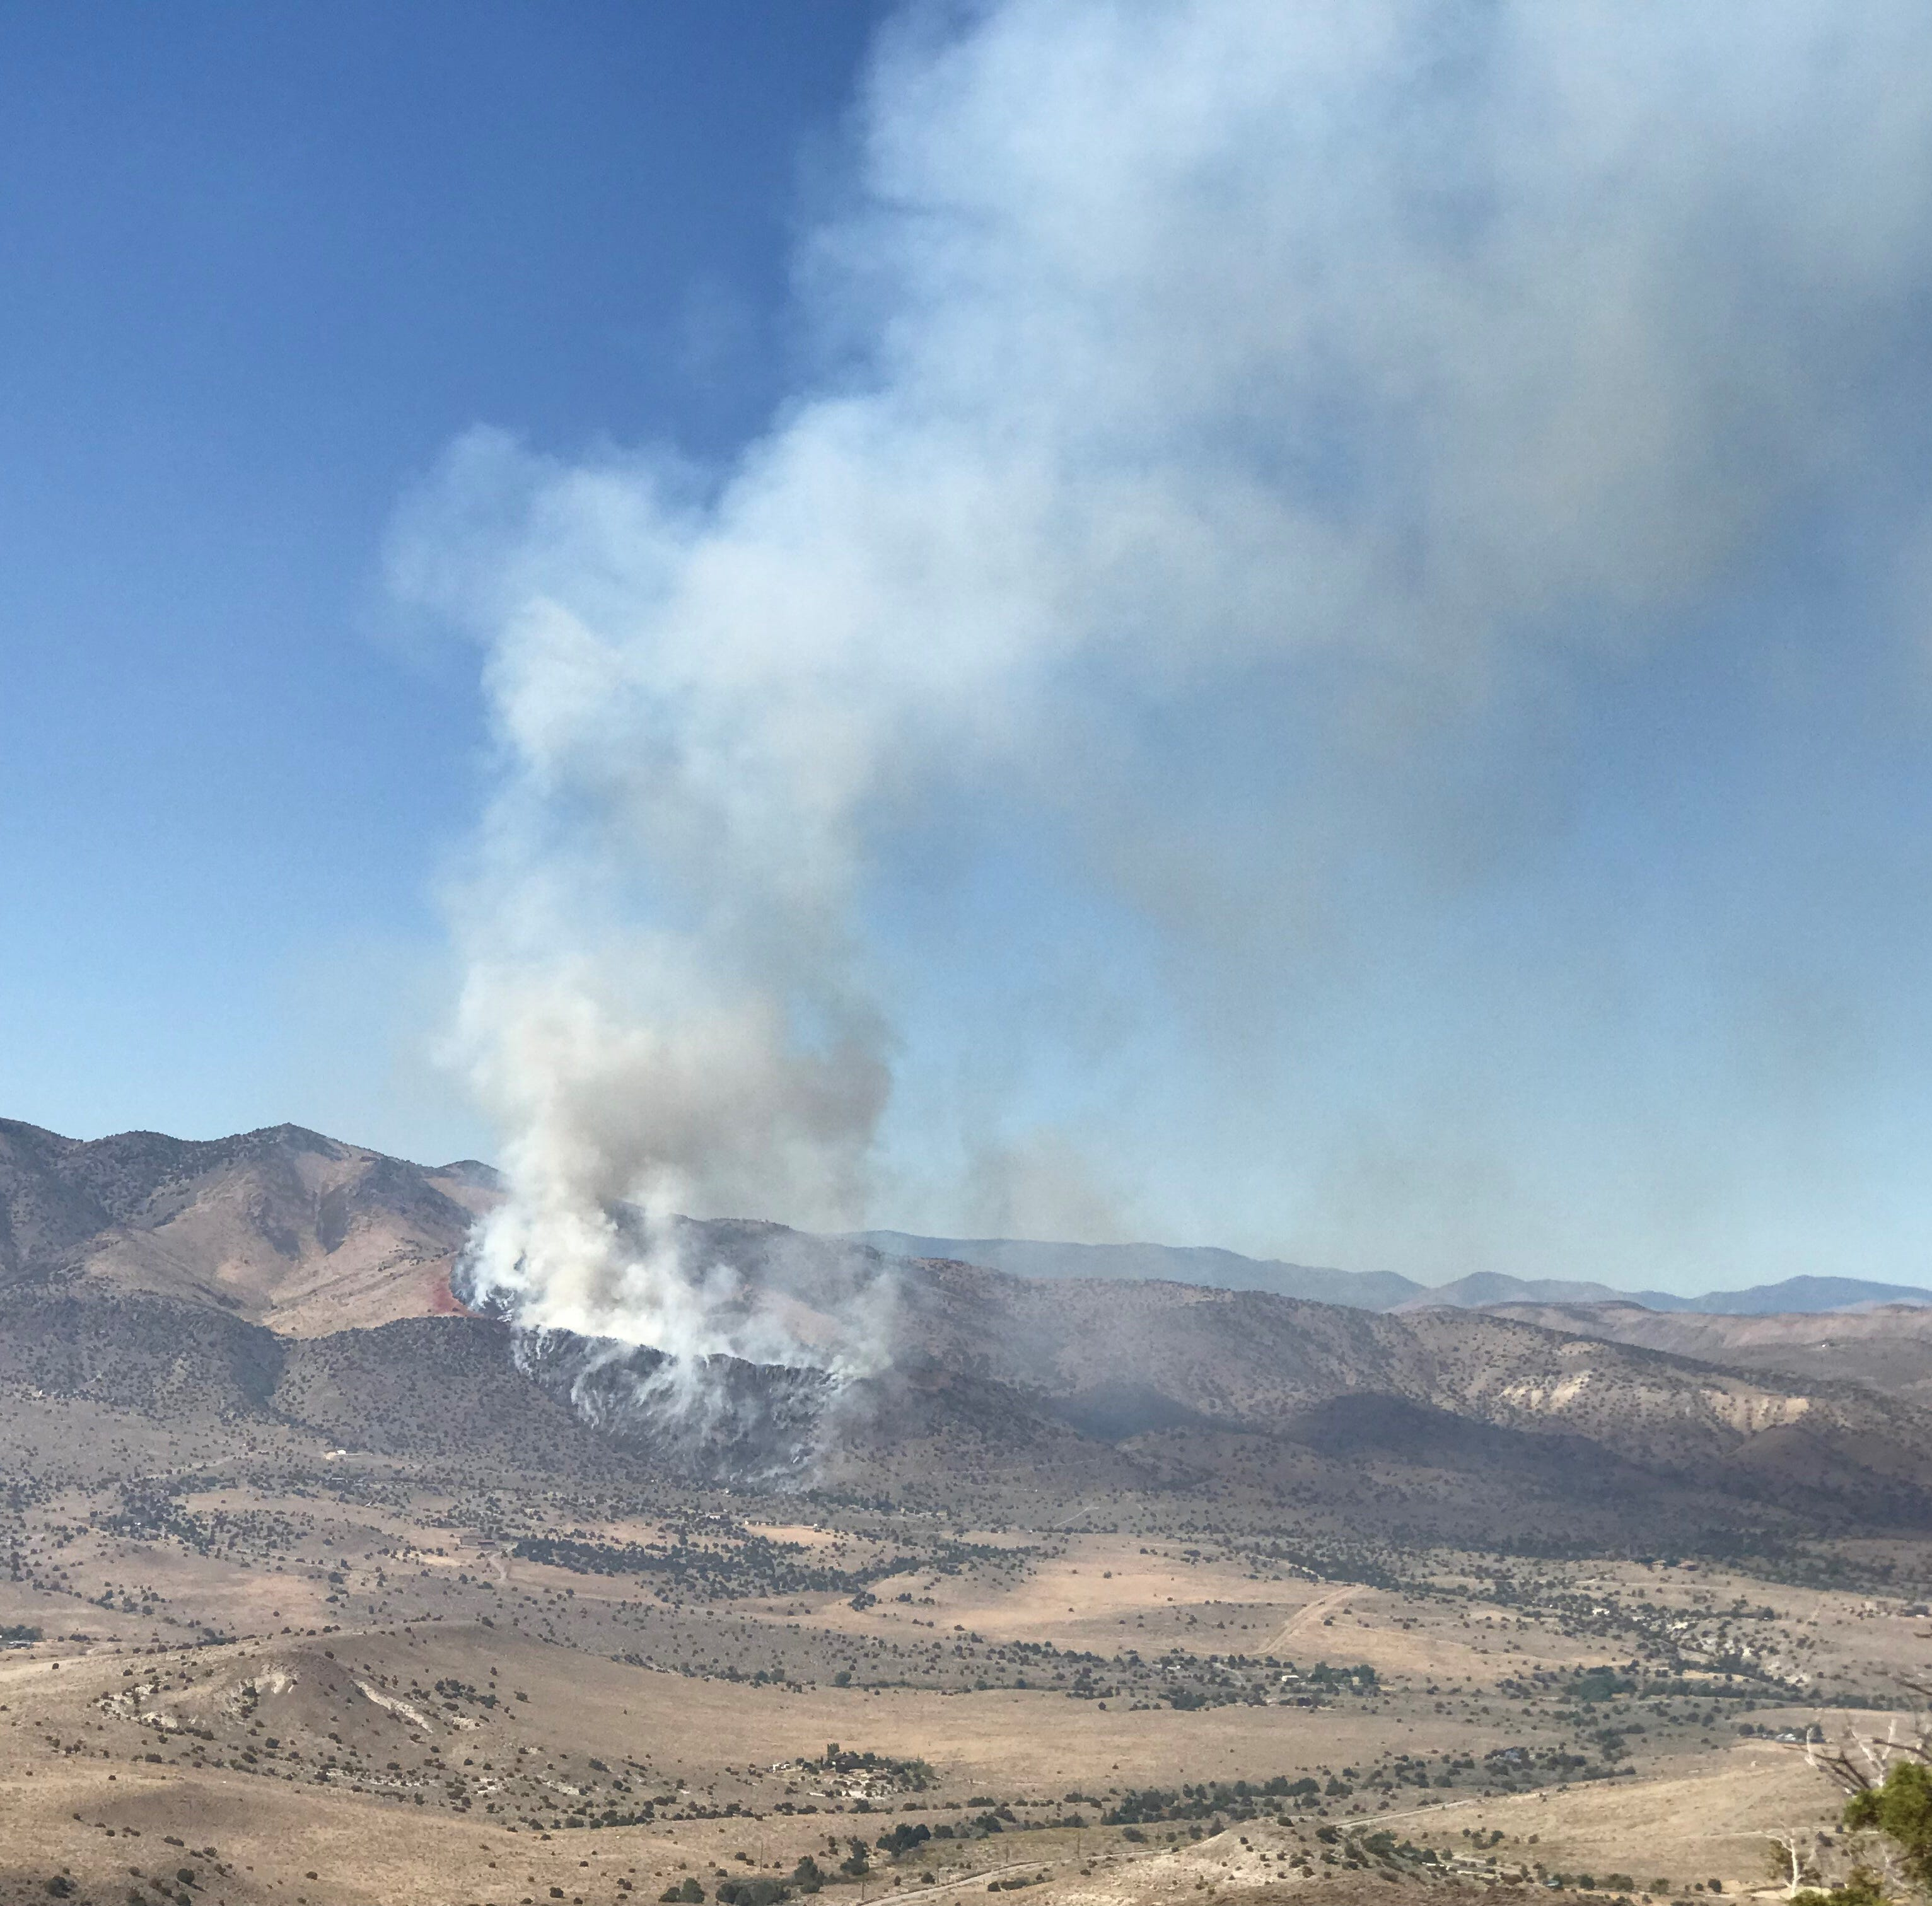 Pioche Fire near Palomino Valley burns 80 acres, fire crews surround home in Palomino Valley where fire burns in backyard